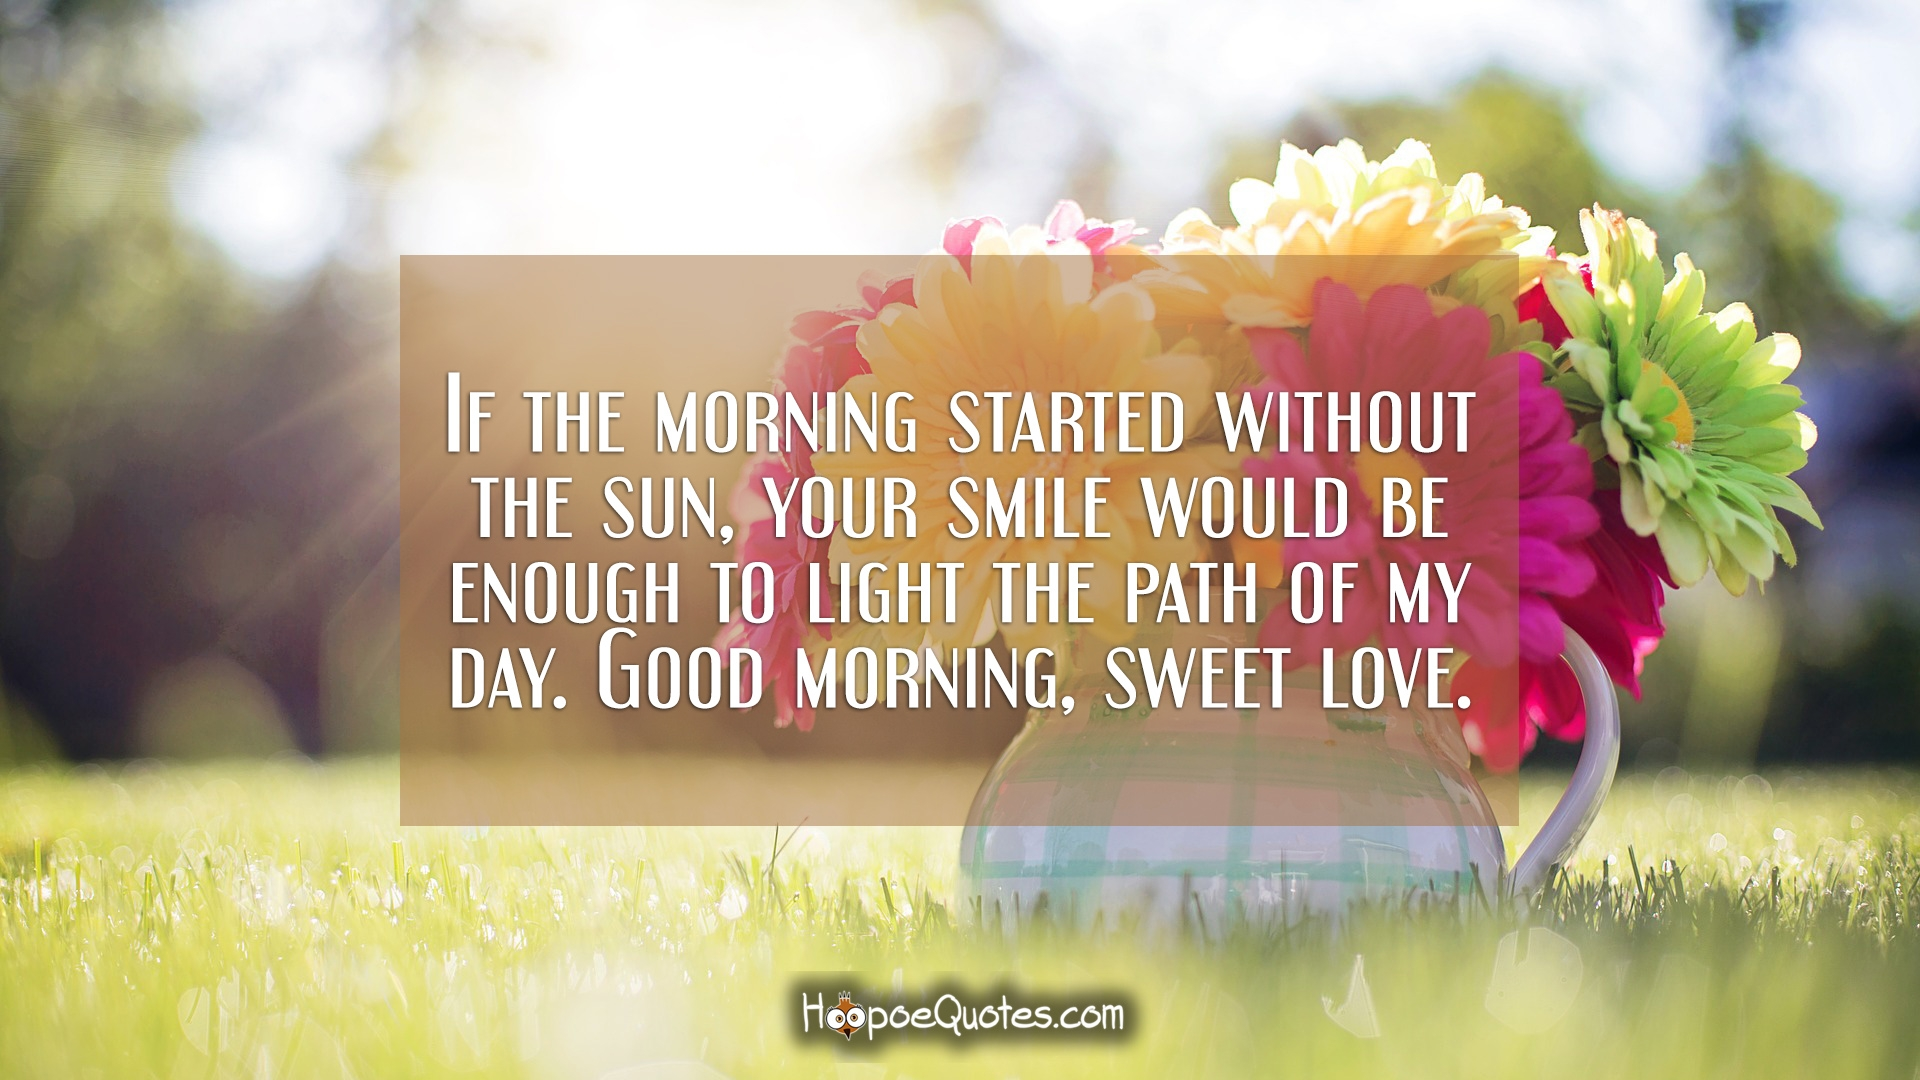 If The Morning Started Without The Sun Your Smile Would Be Enough